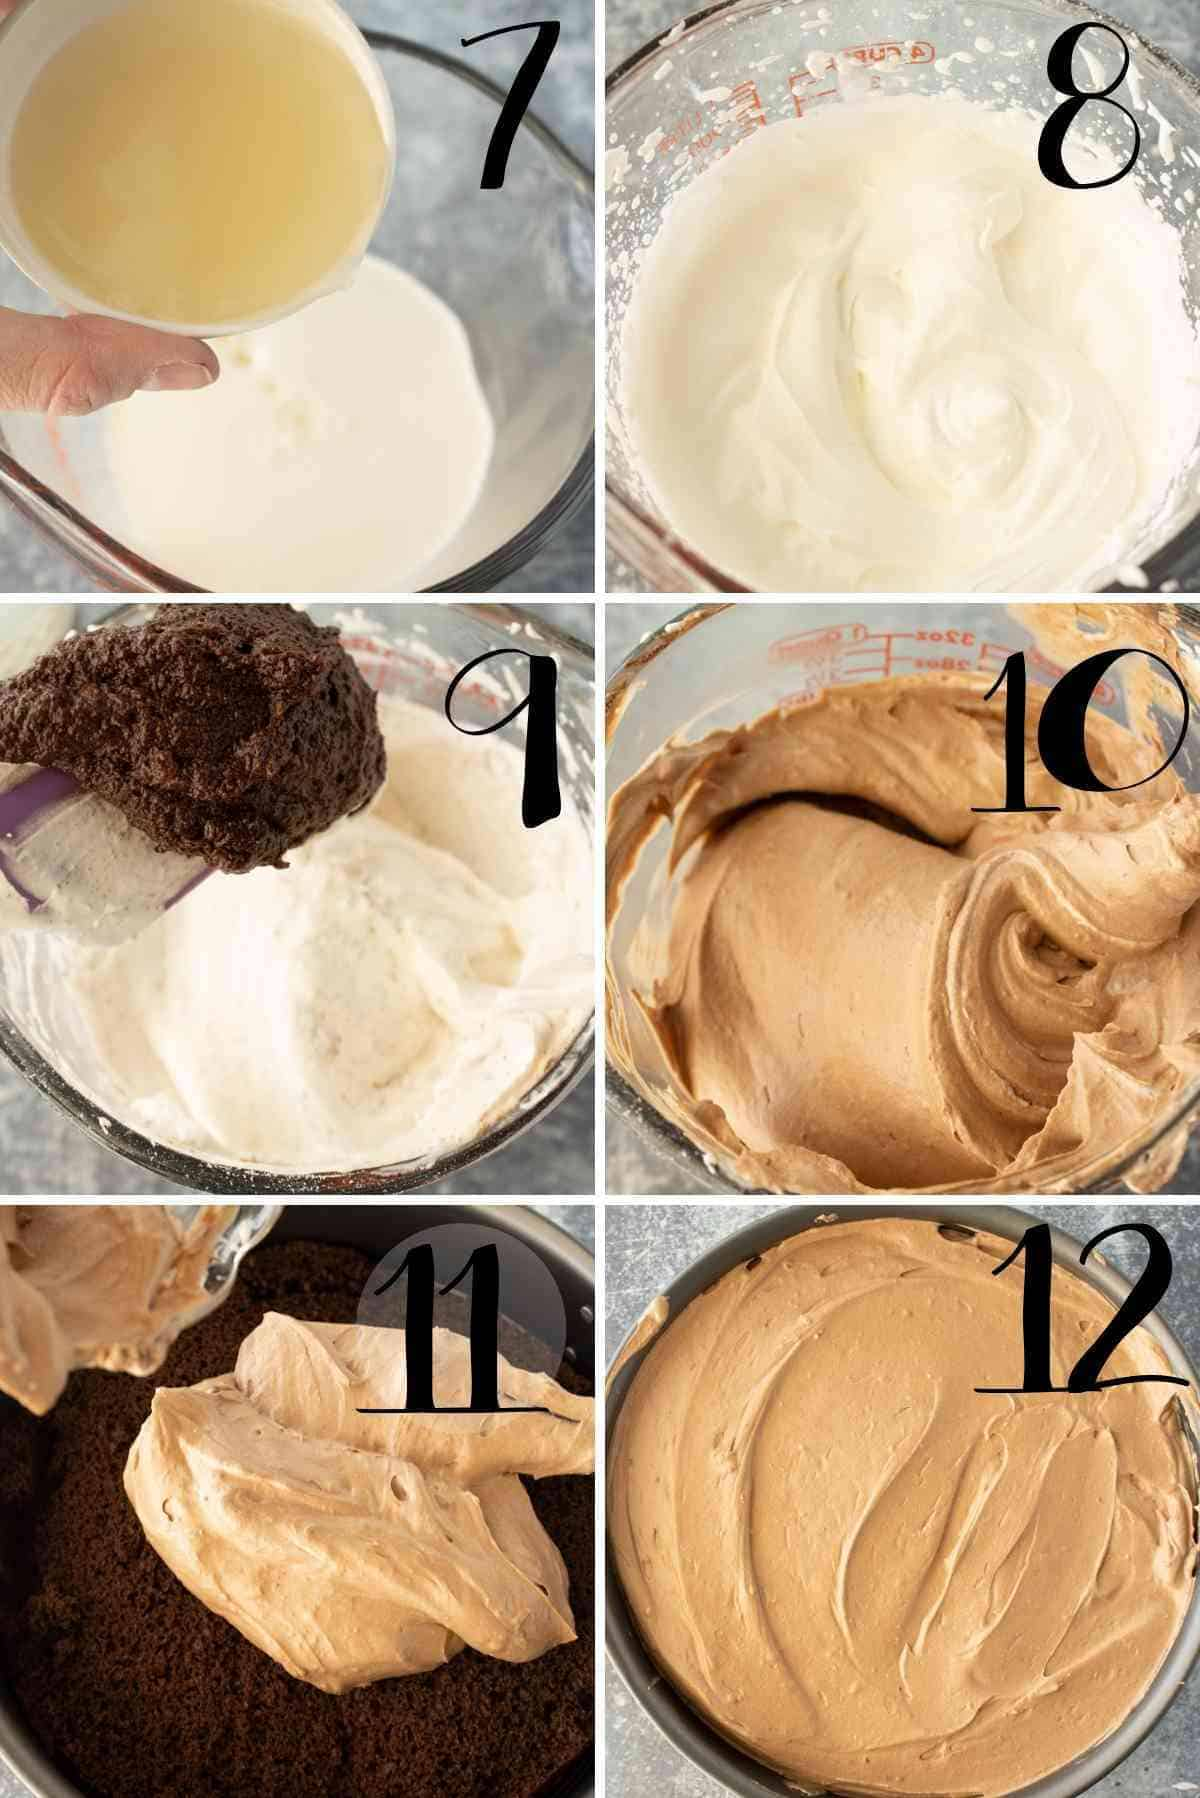 Chocolate cream cheese folded into the whipped cream and spread over the cake layer.